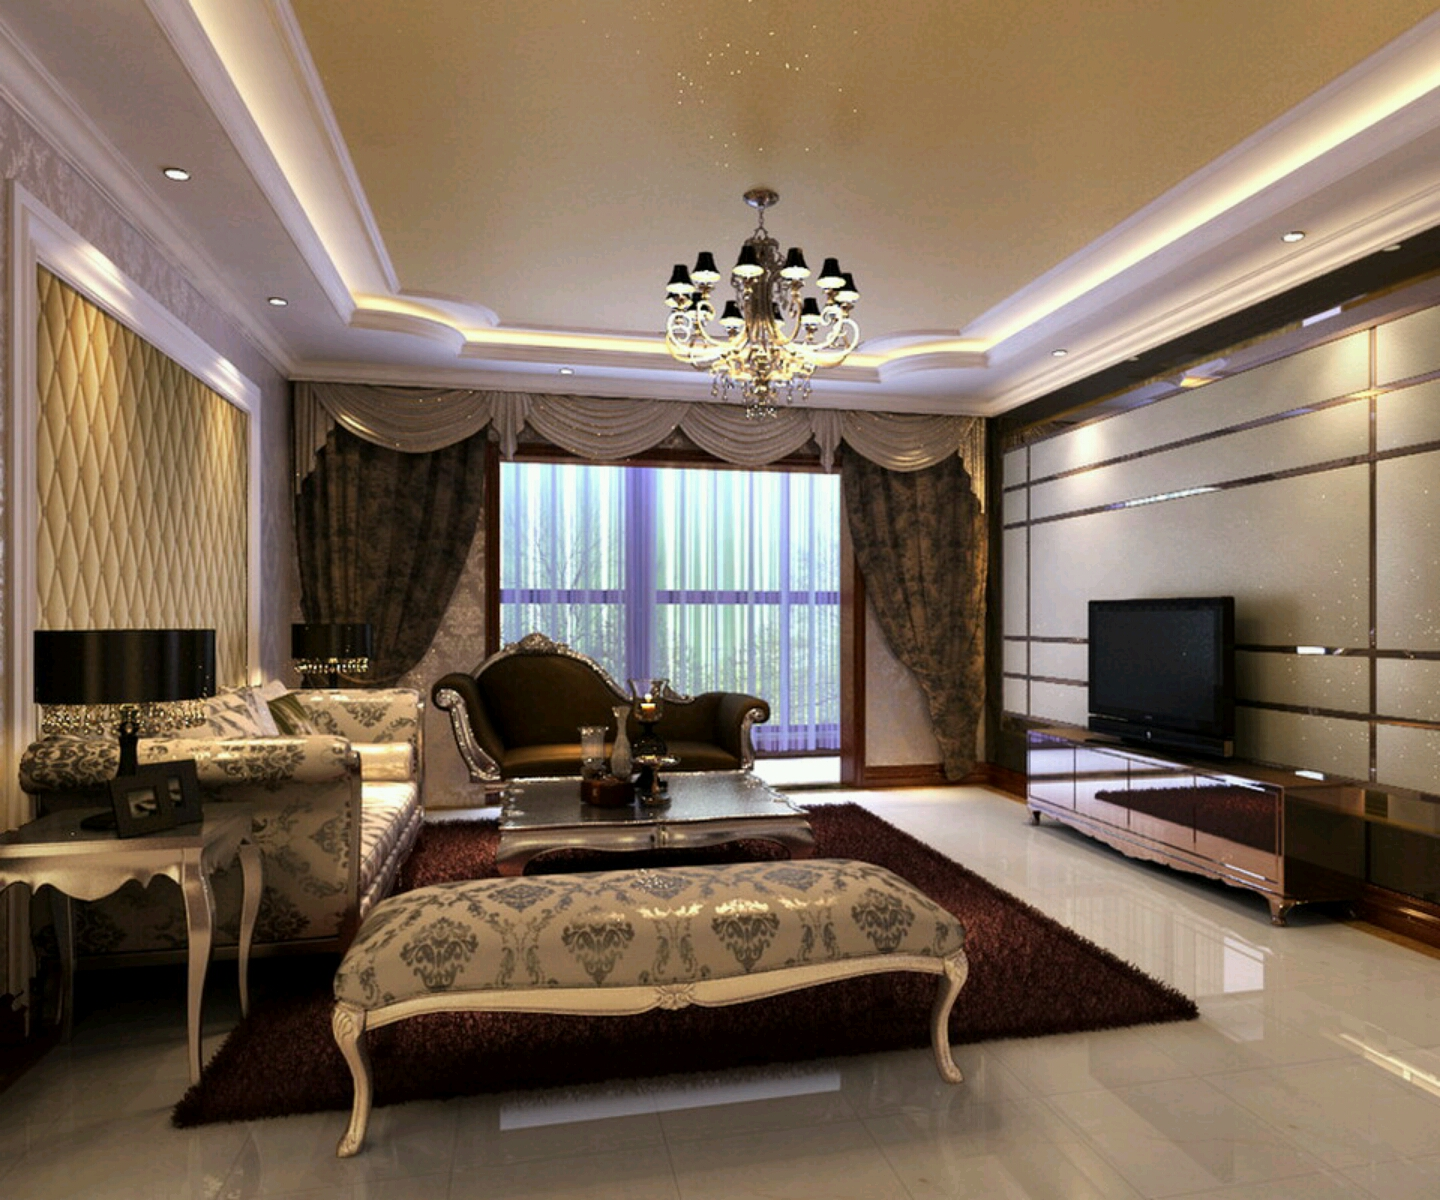 Home Decor Ideas For Living Room New Home Designs Latest.: Luxury Homes Interior Decoration